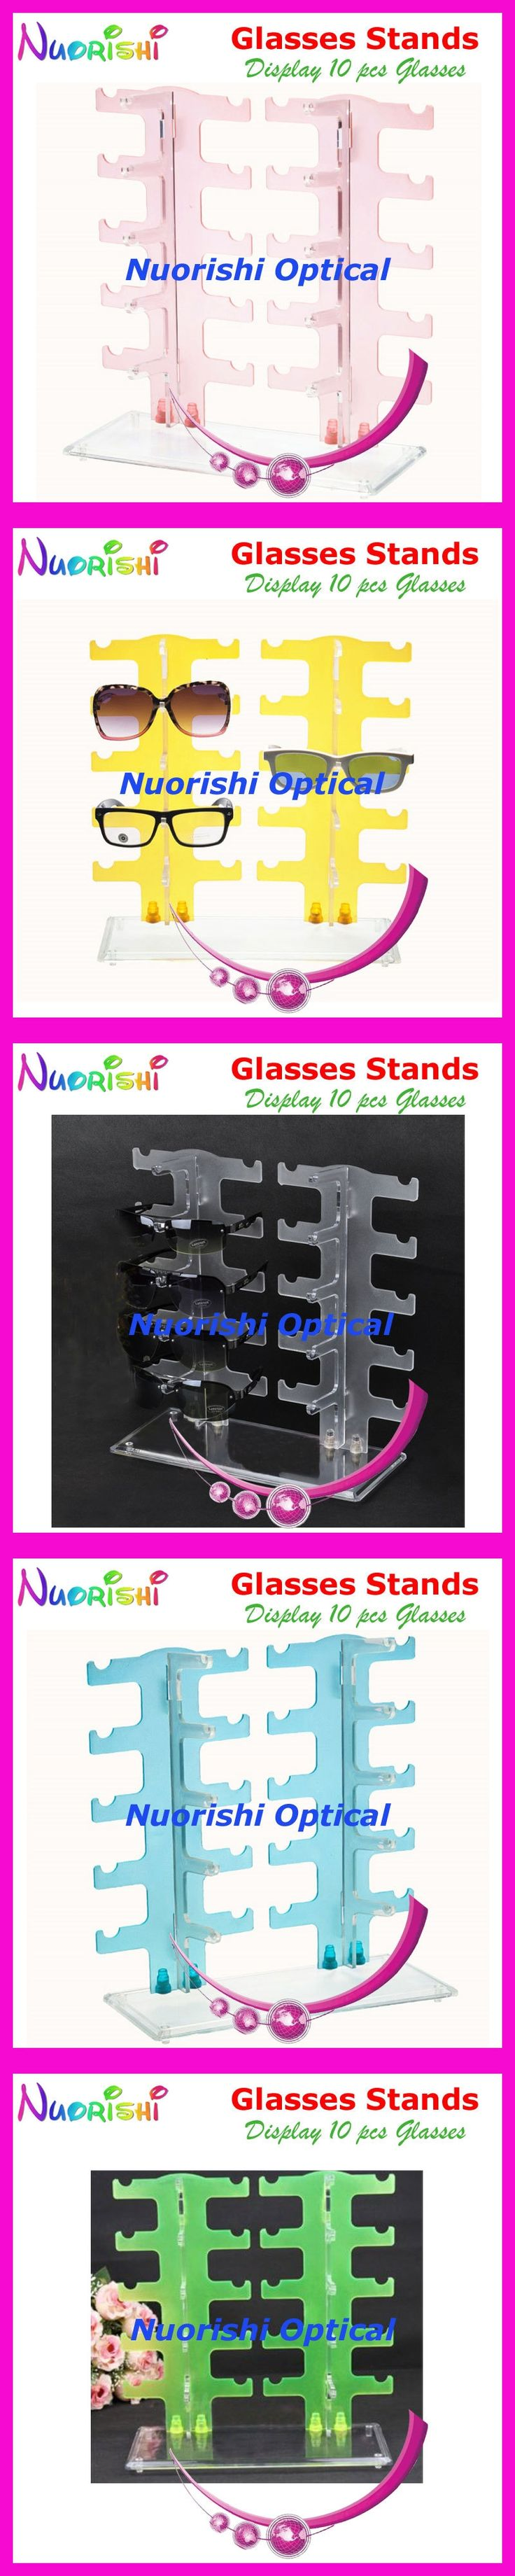 5 Colors Eyeglass Sunglass Eyewear Glasses Store Display Stands Props Shelf Show 10pcs Glasses On Counter CK304-10 Free Shipping